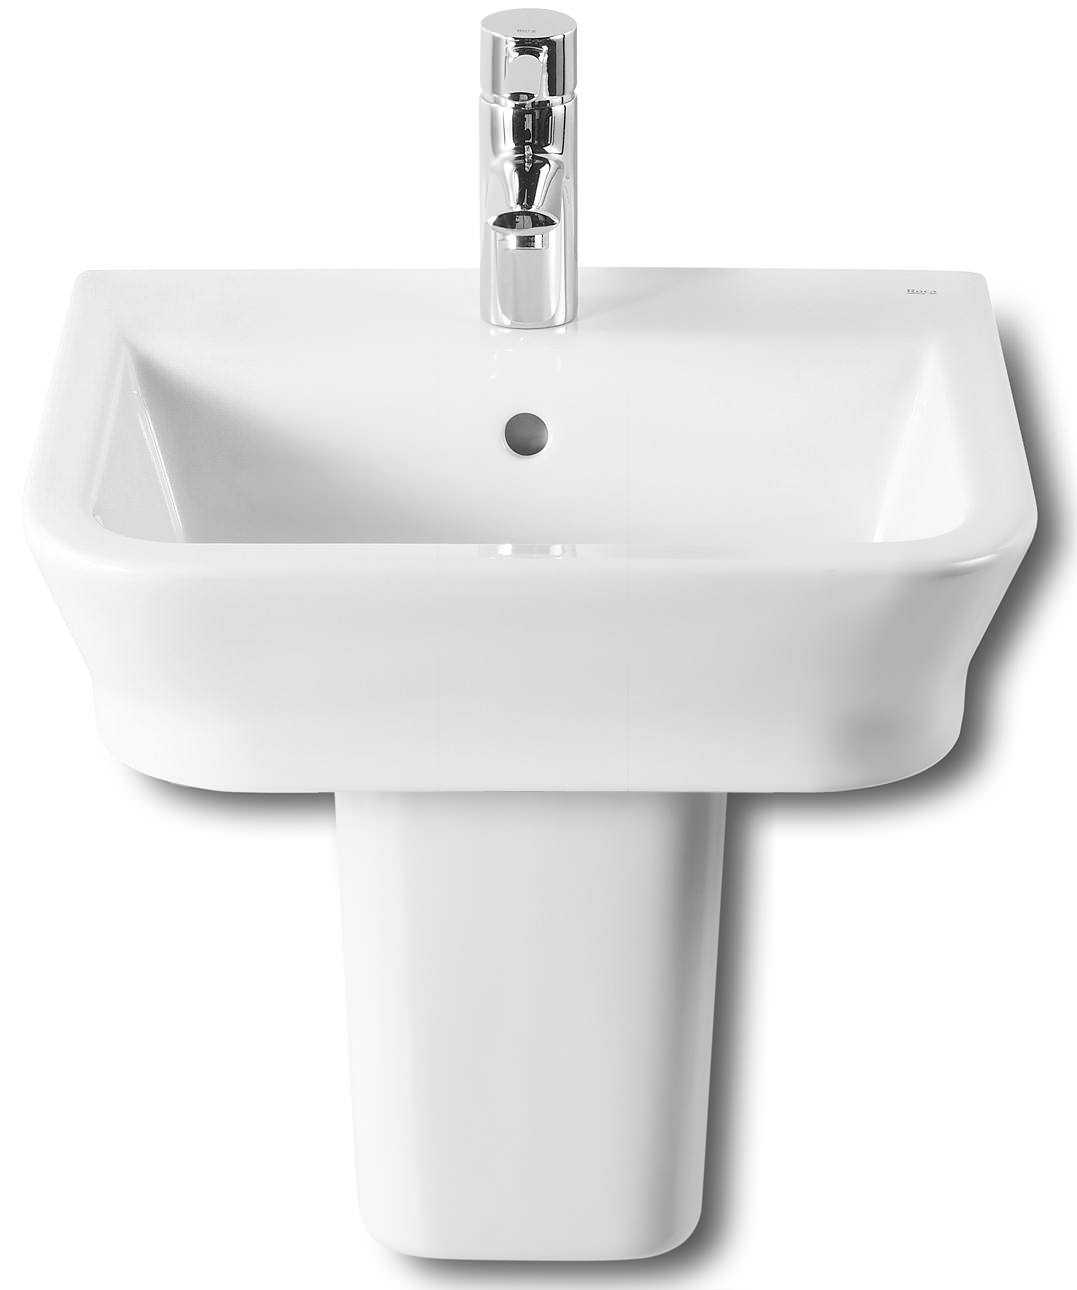 roca bathroom sinks roca the gap white basin 450mm wide 327477000 14235 | QS V55553 1 lg